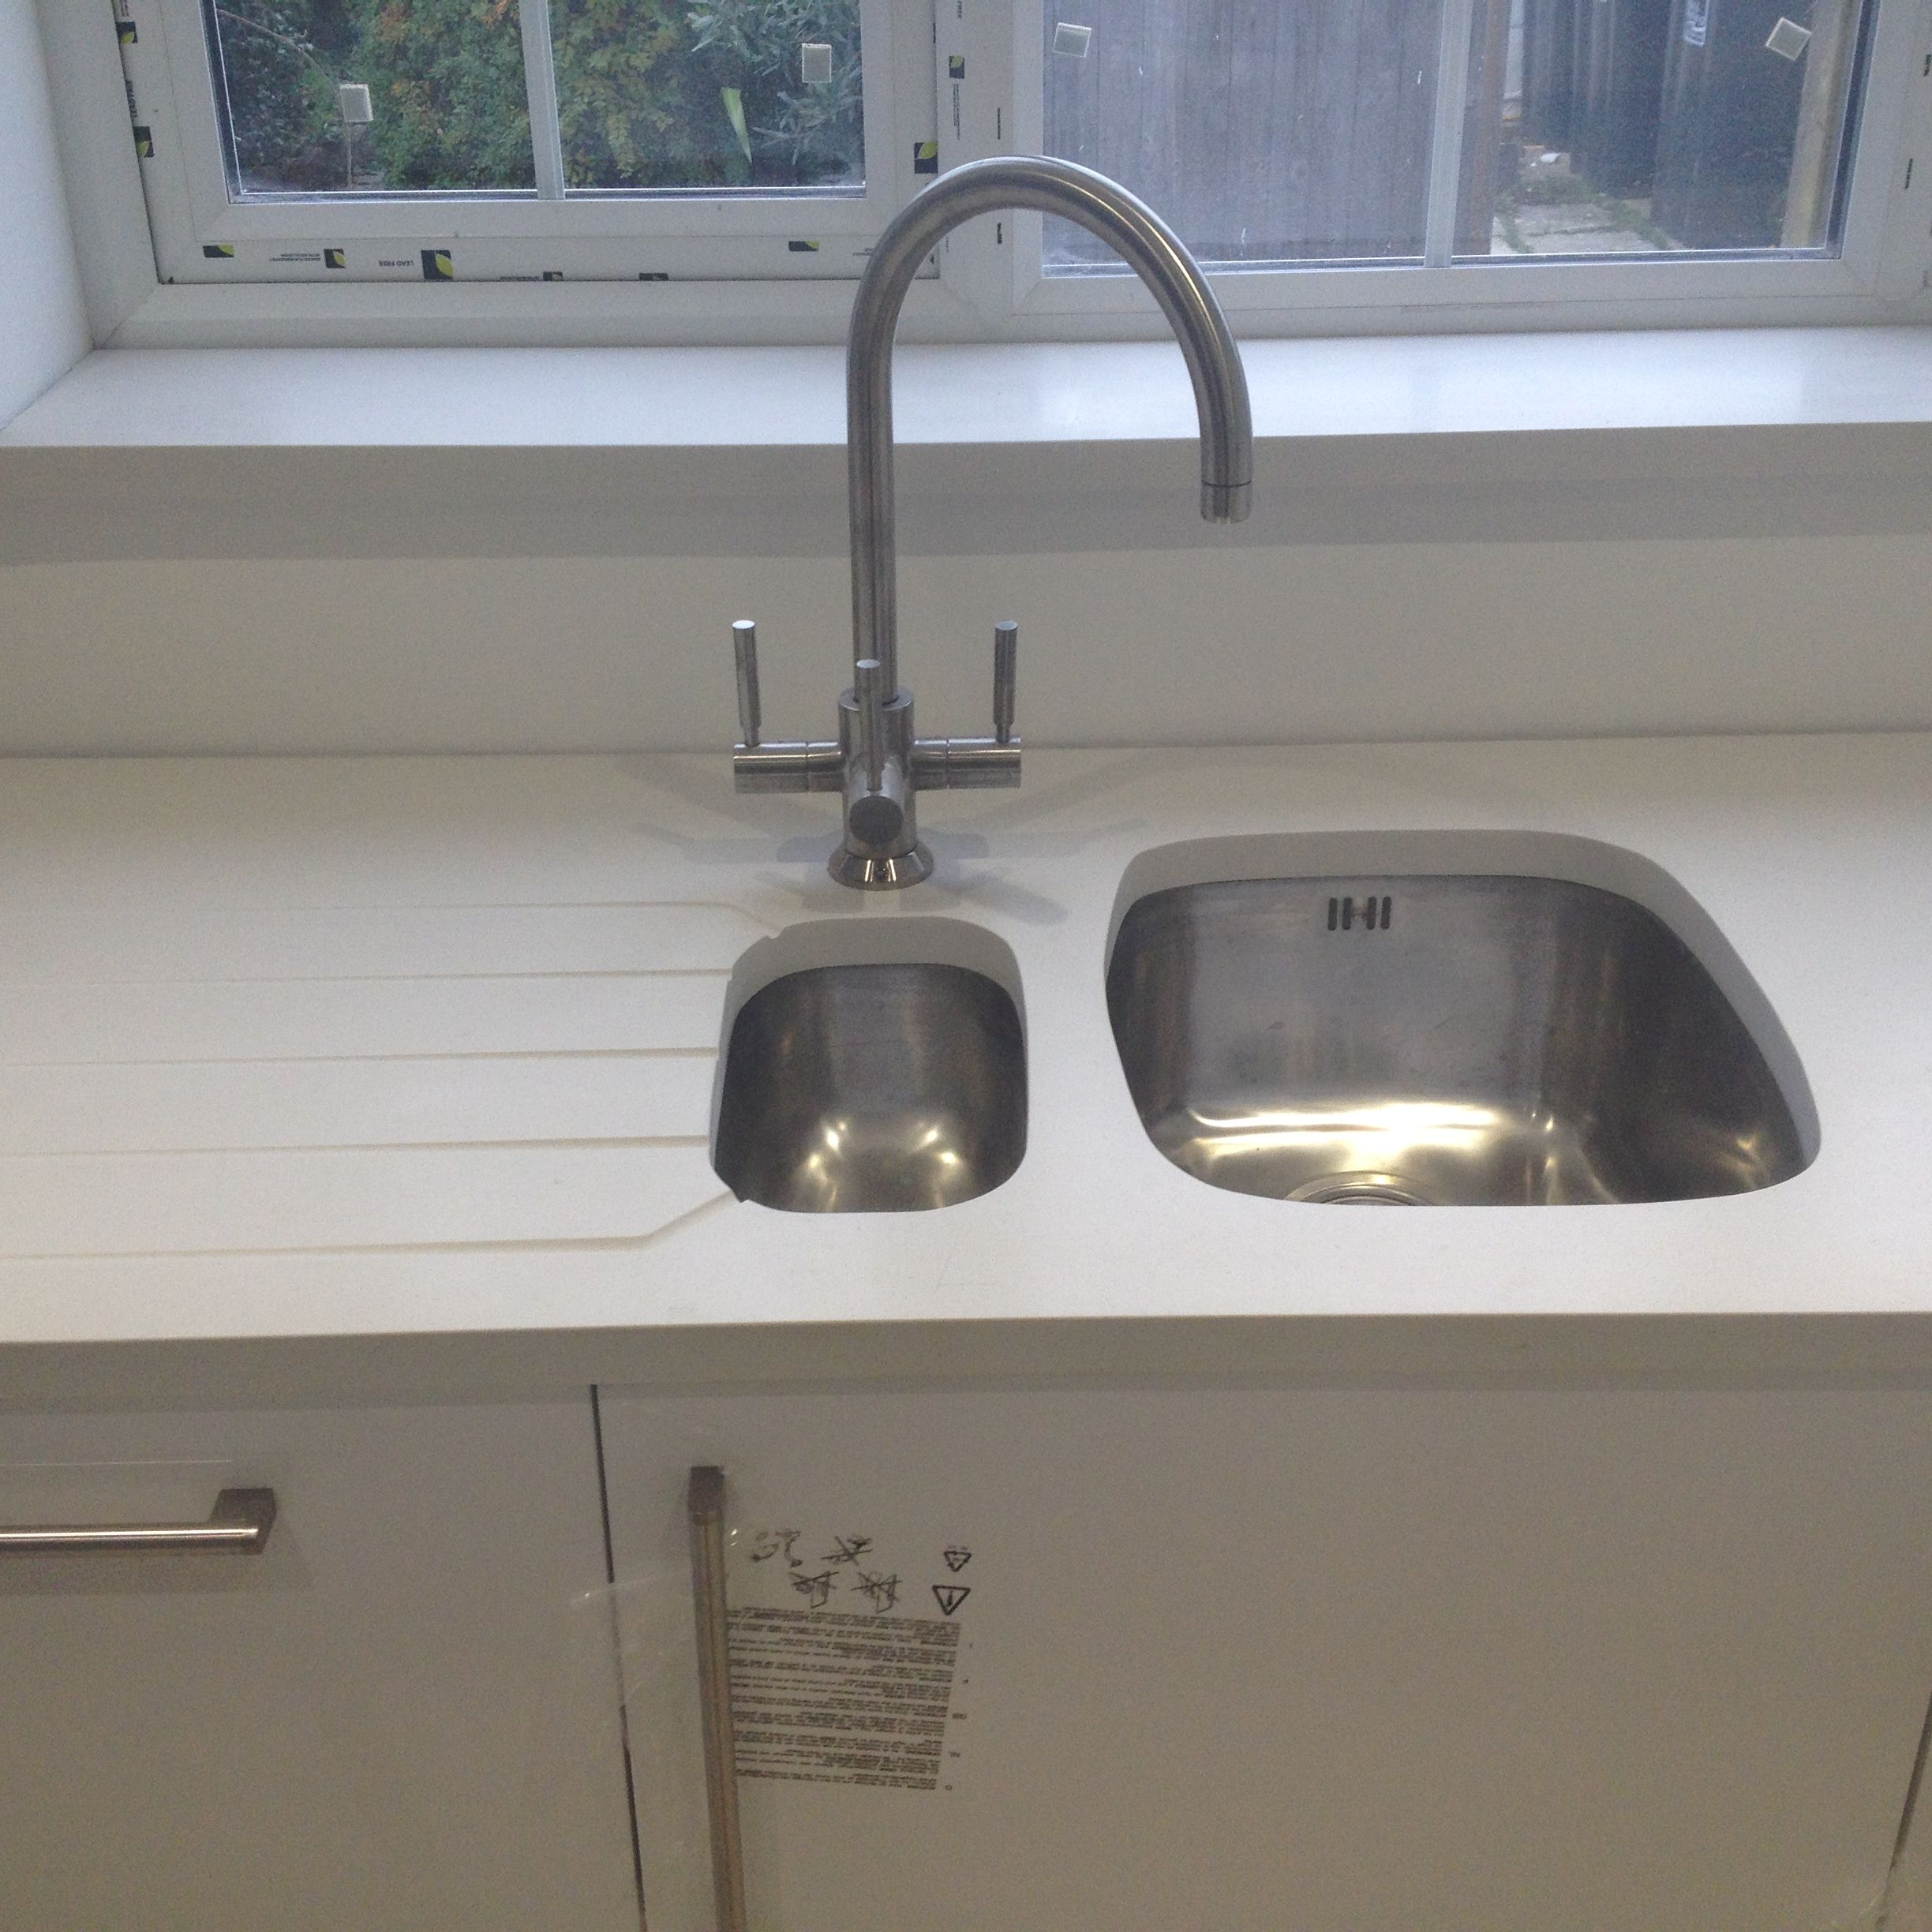 Awesome Under Mount Sink And Drainer Rebated In To Composite Worktop.